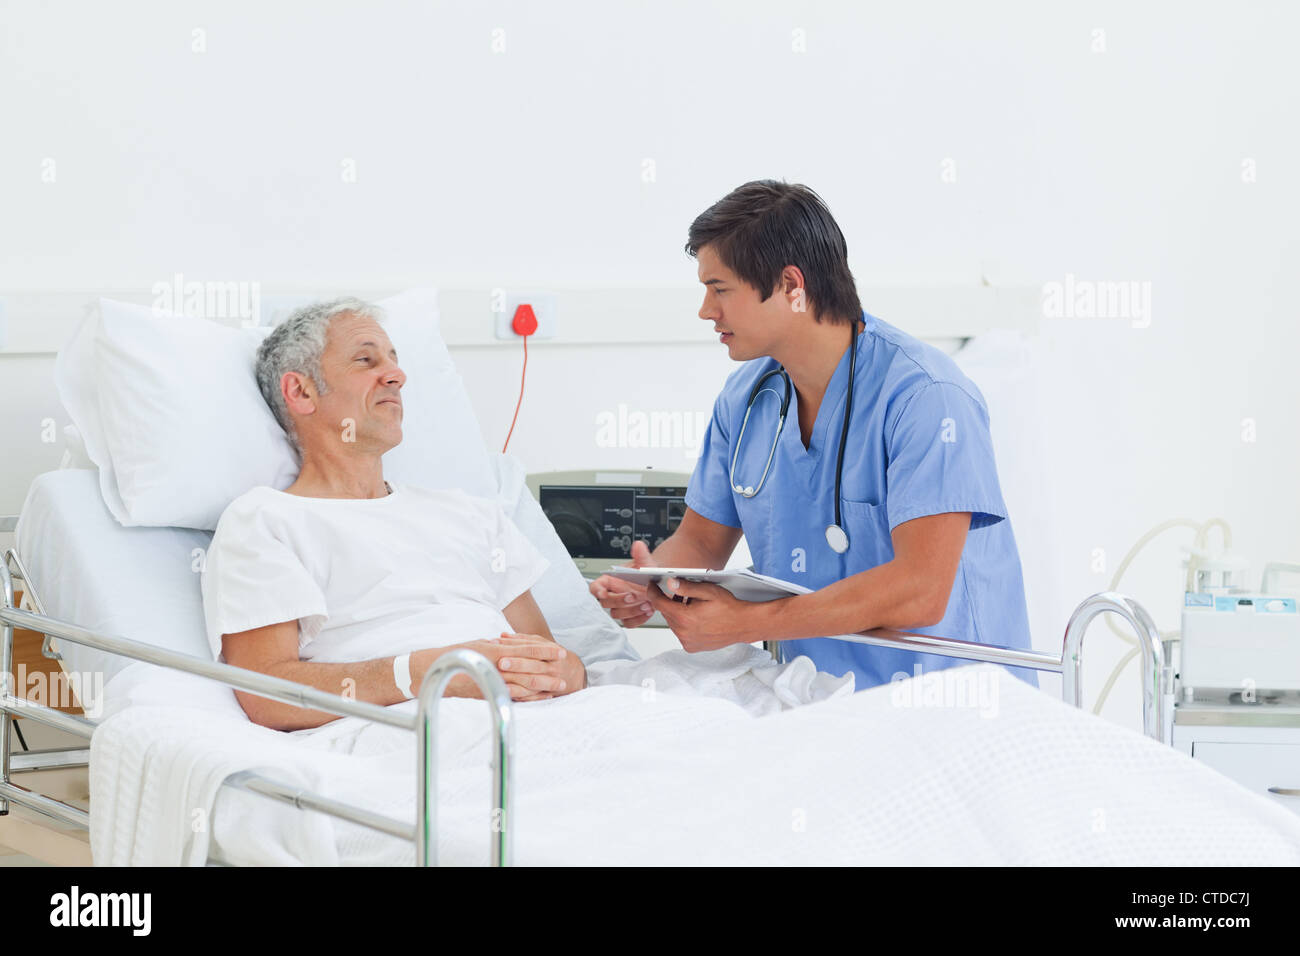 Nurse and a patient looking at each other with serious expressions - Stock Image